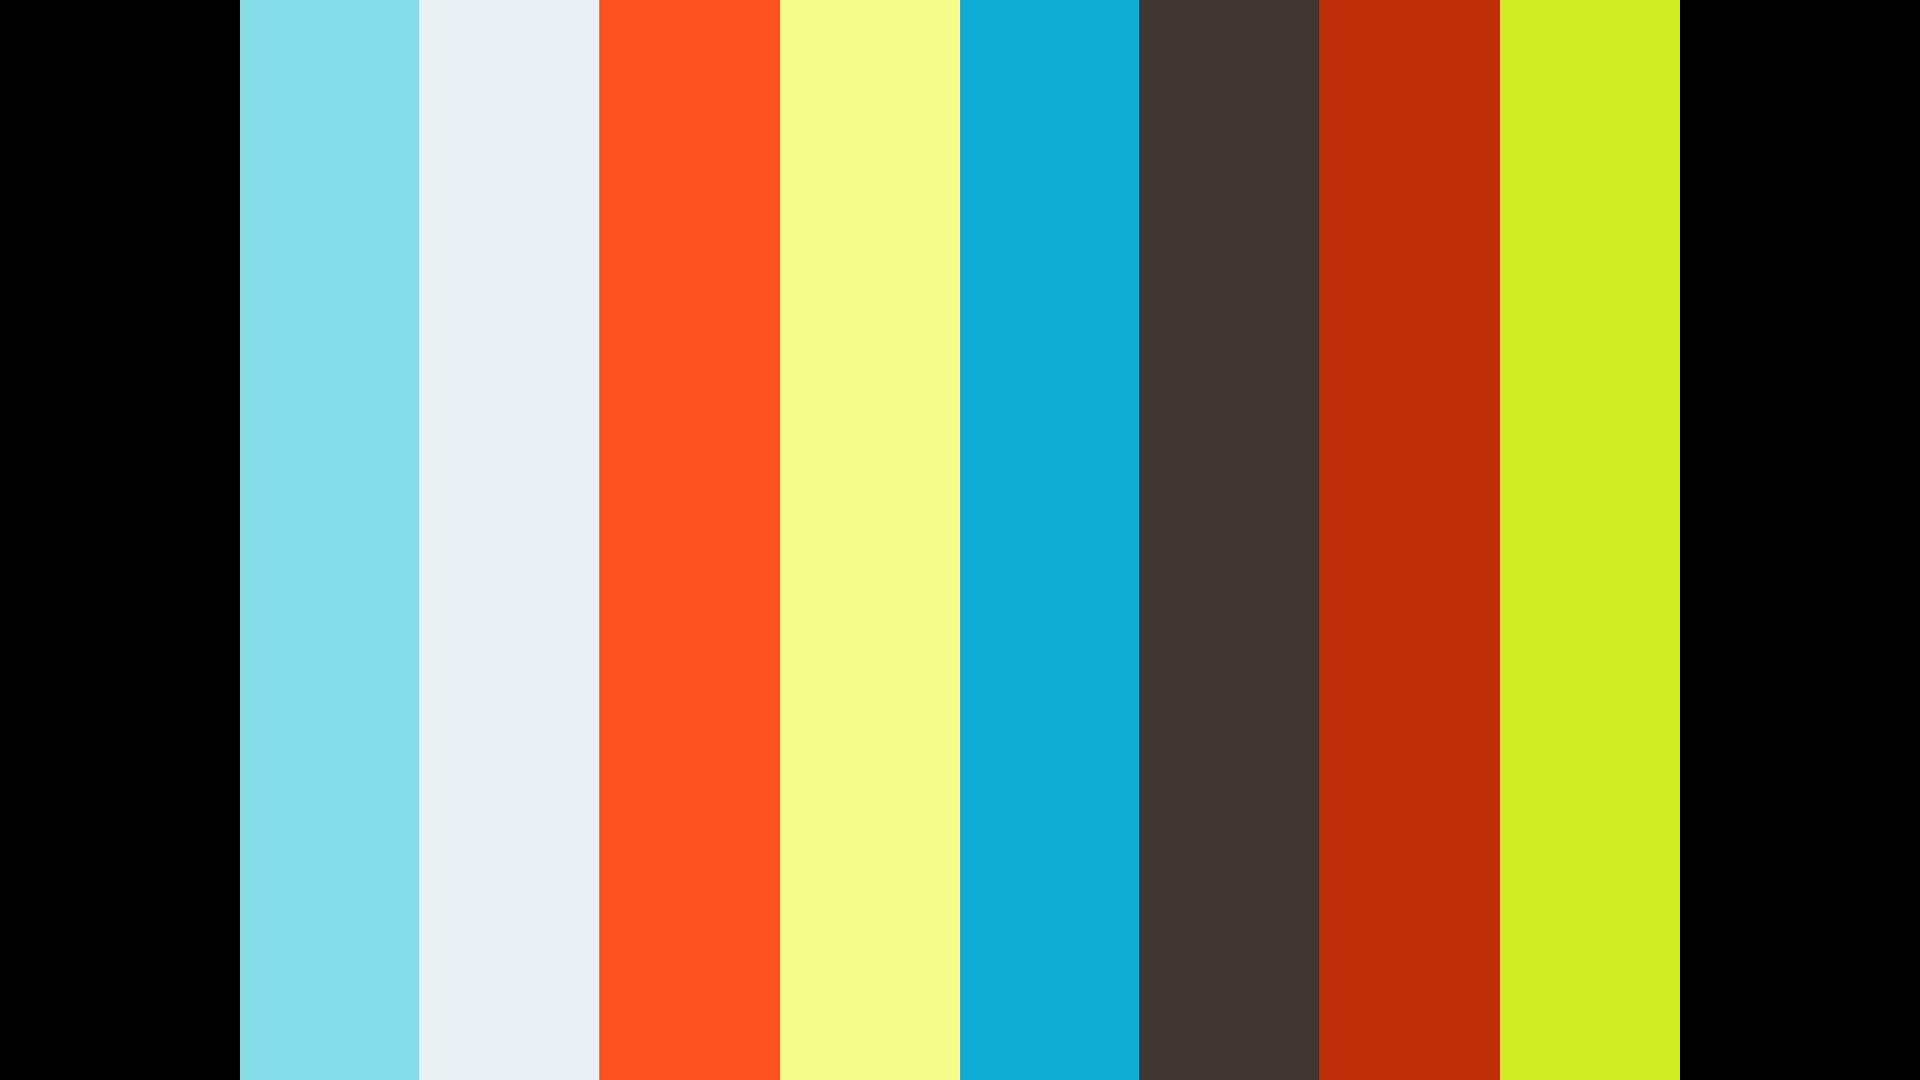 Should New Zealand's constitution protect the independence of the public service?